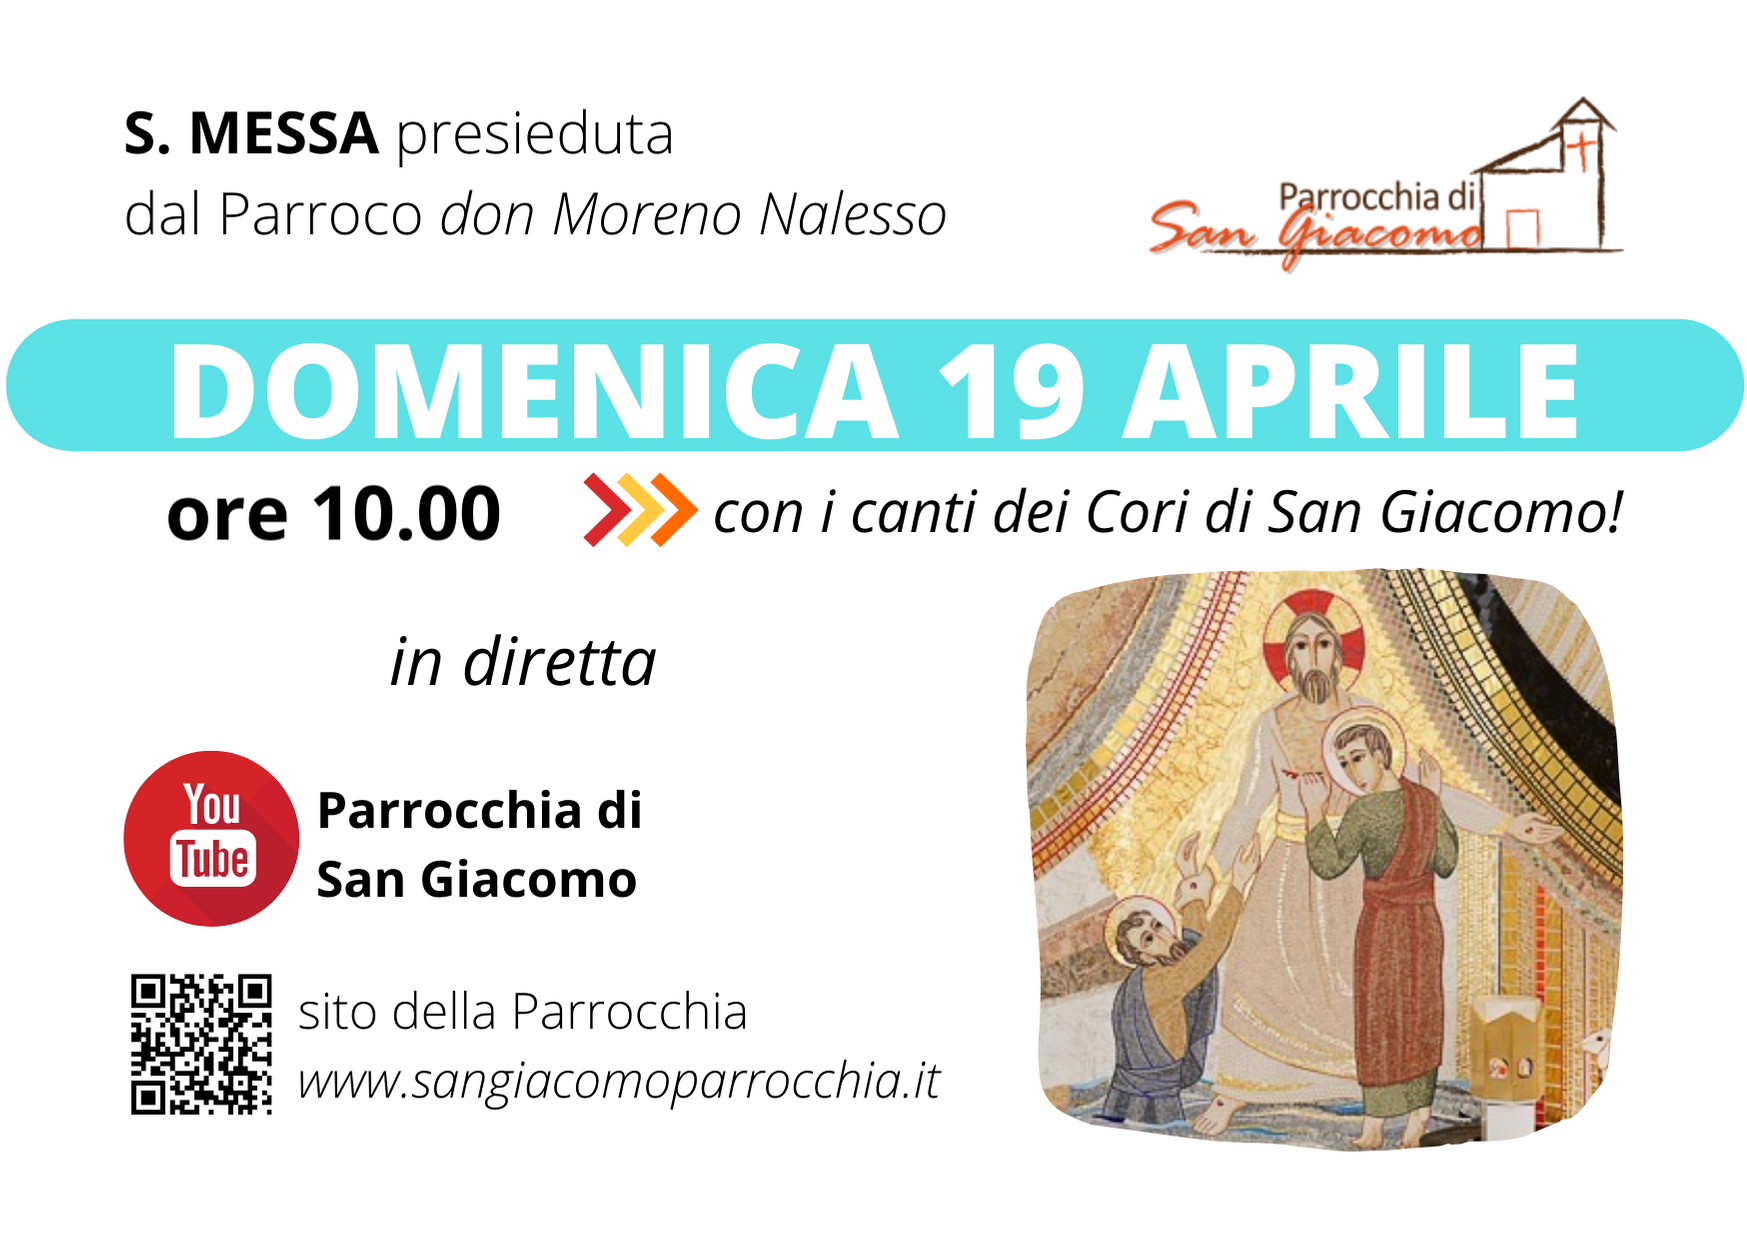 S. MESSA IN STREAMING – 19 APRILE